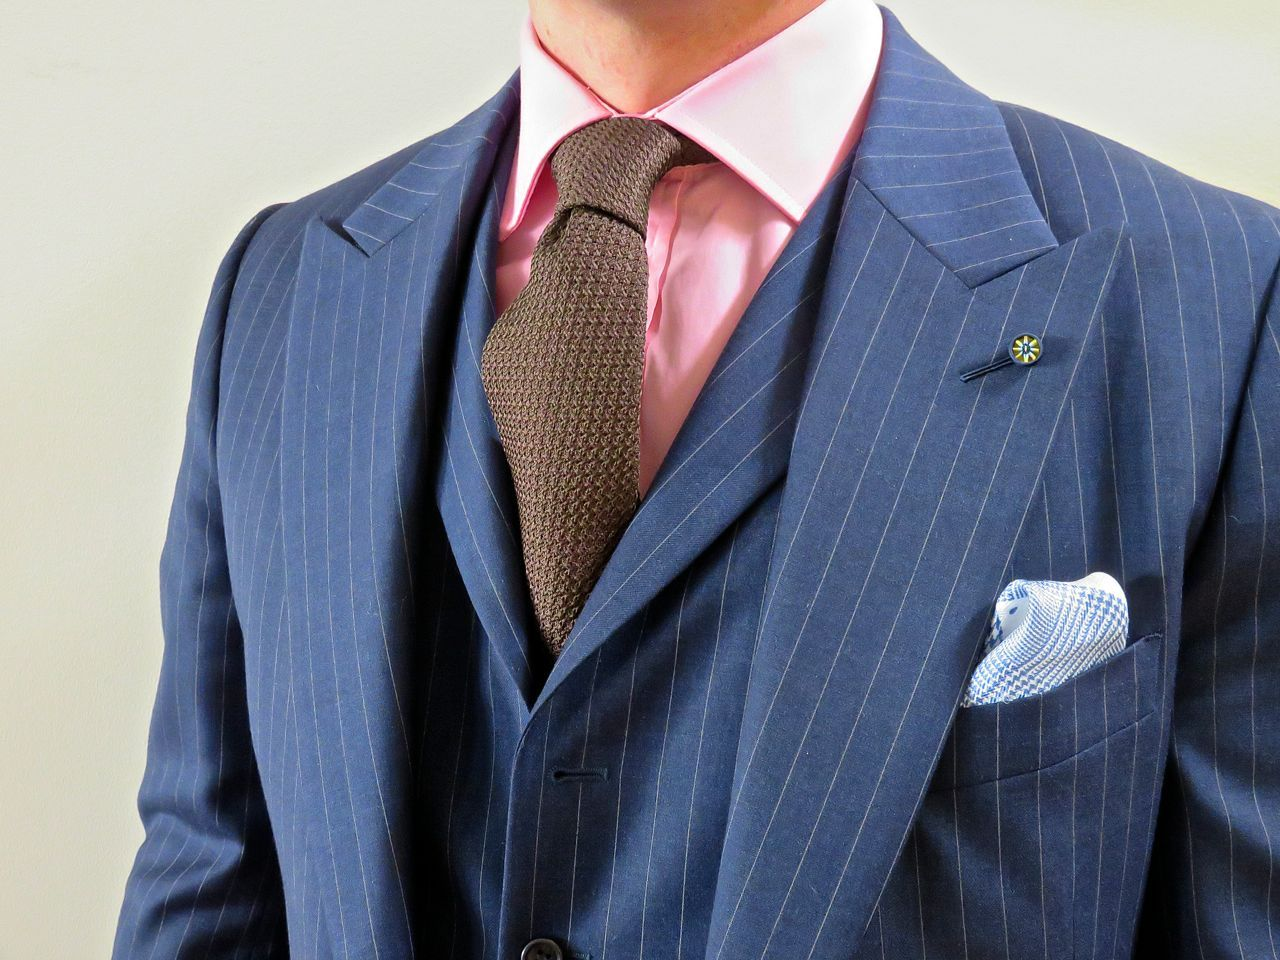 pinstripe suit - Google Search | 1 | Pinterest | Pinstripe suit